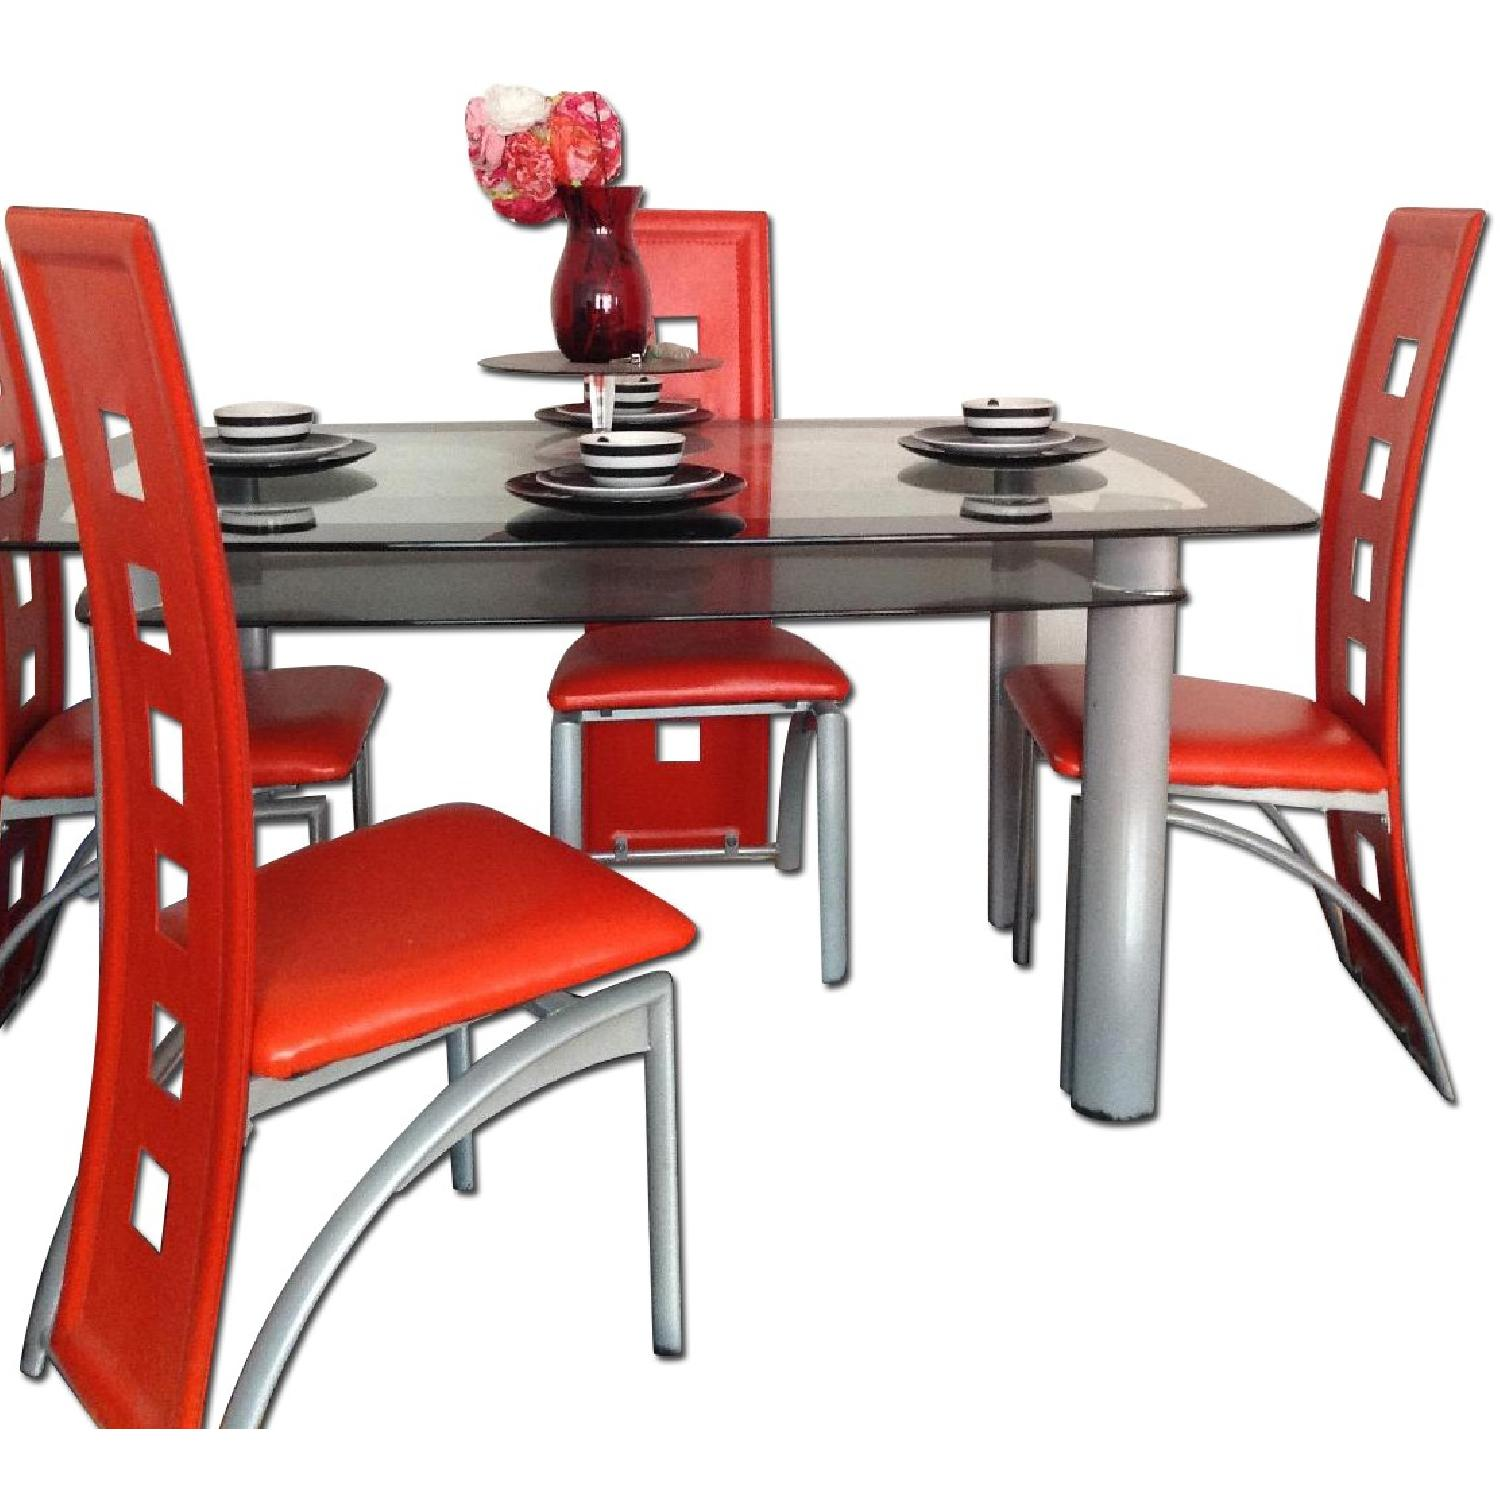 Modern Glass Table w/ 4 Chairs - image-0